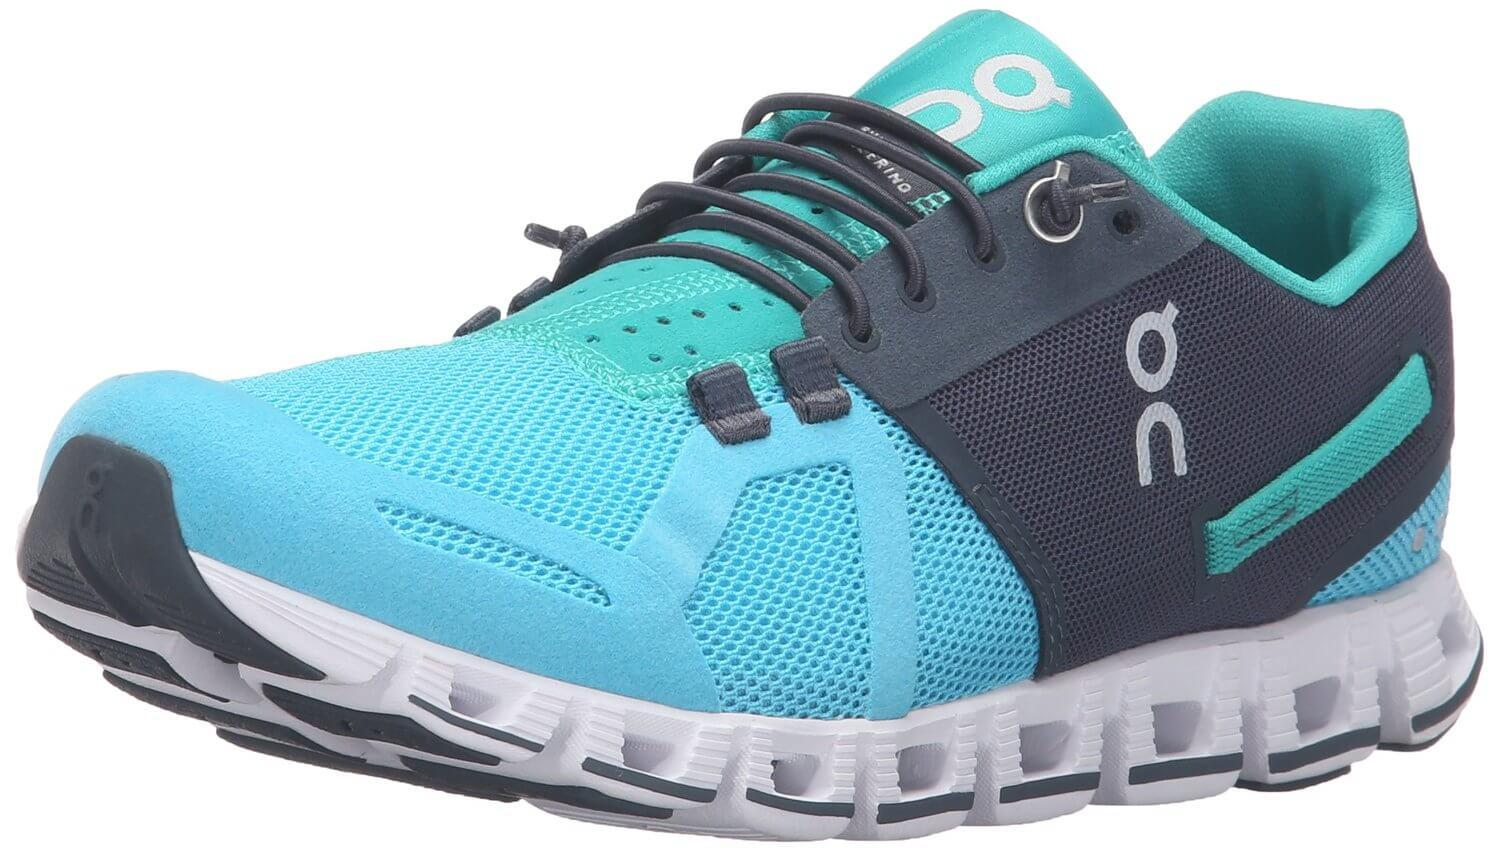 The On Cloud is a lightweight and unconventionally designed running shoe from Switzerland.